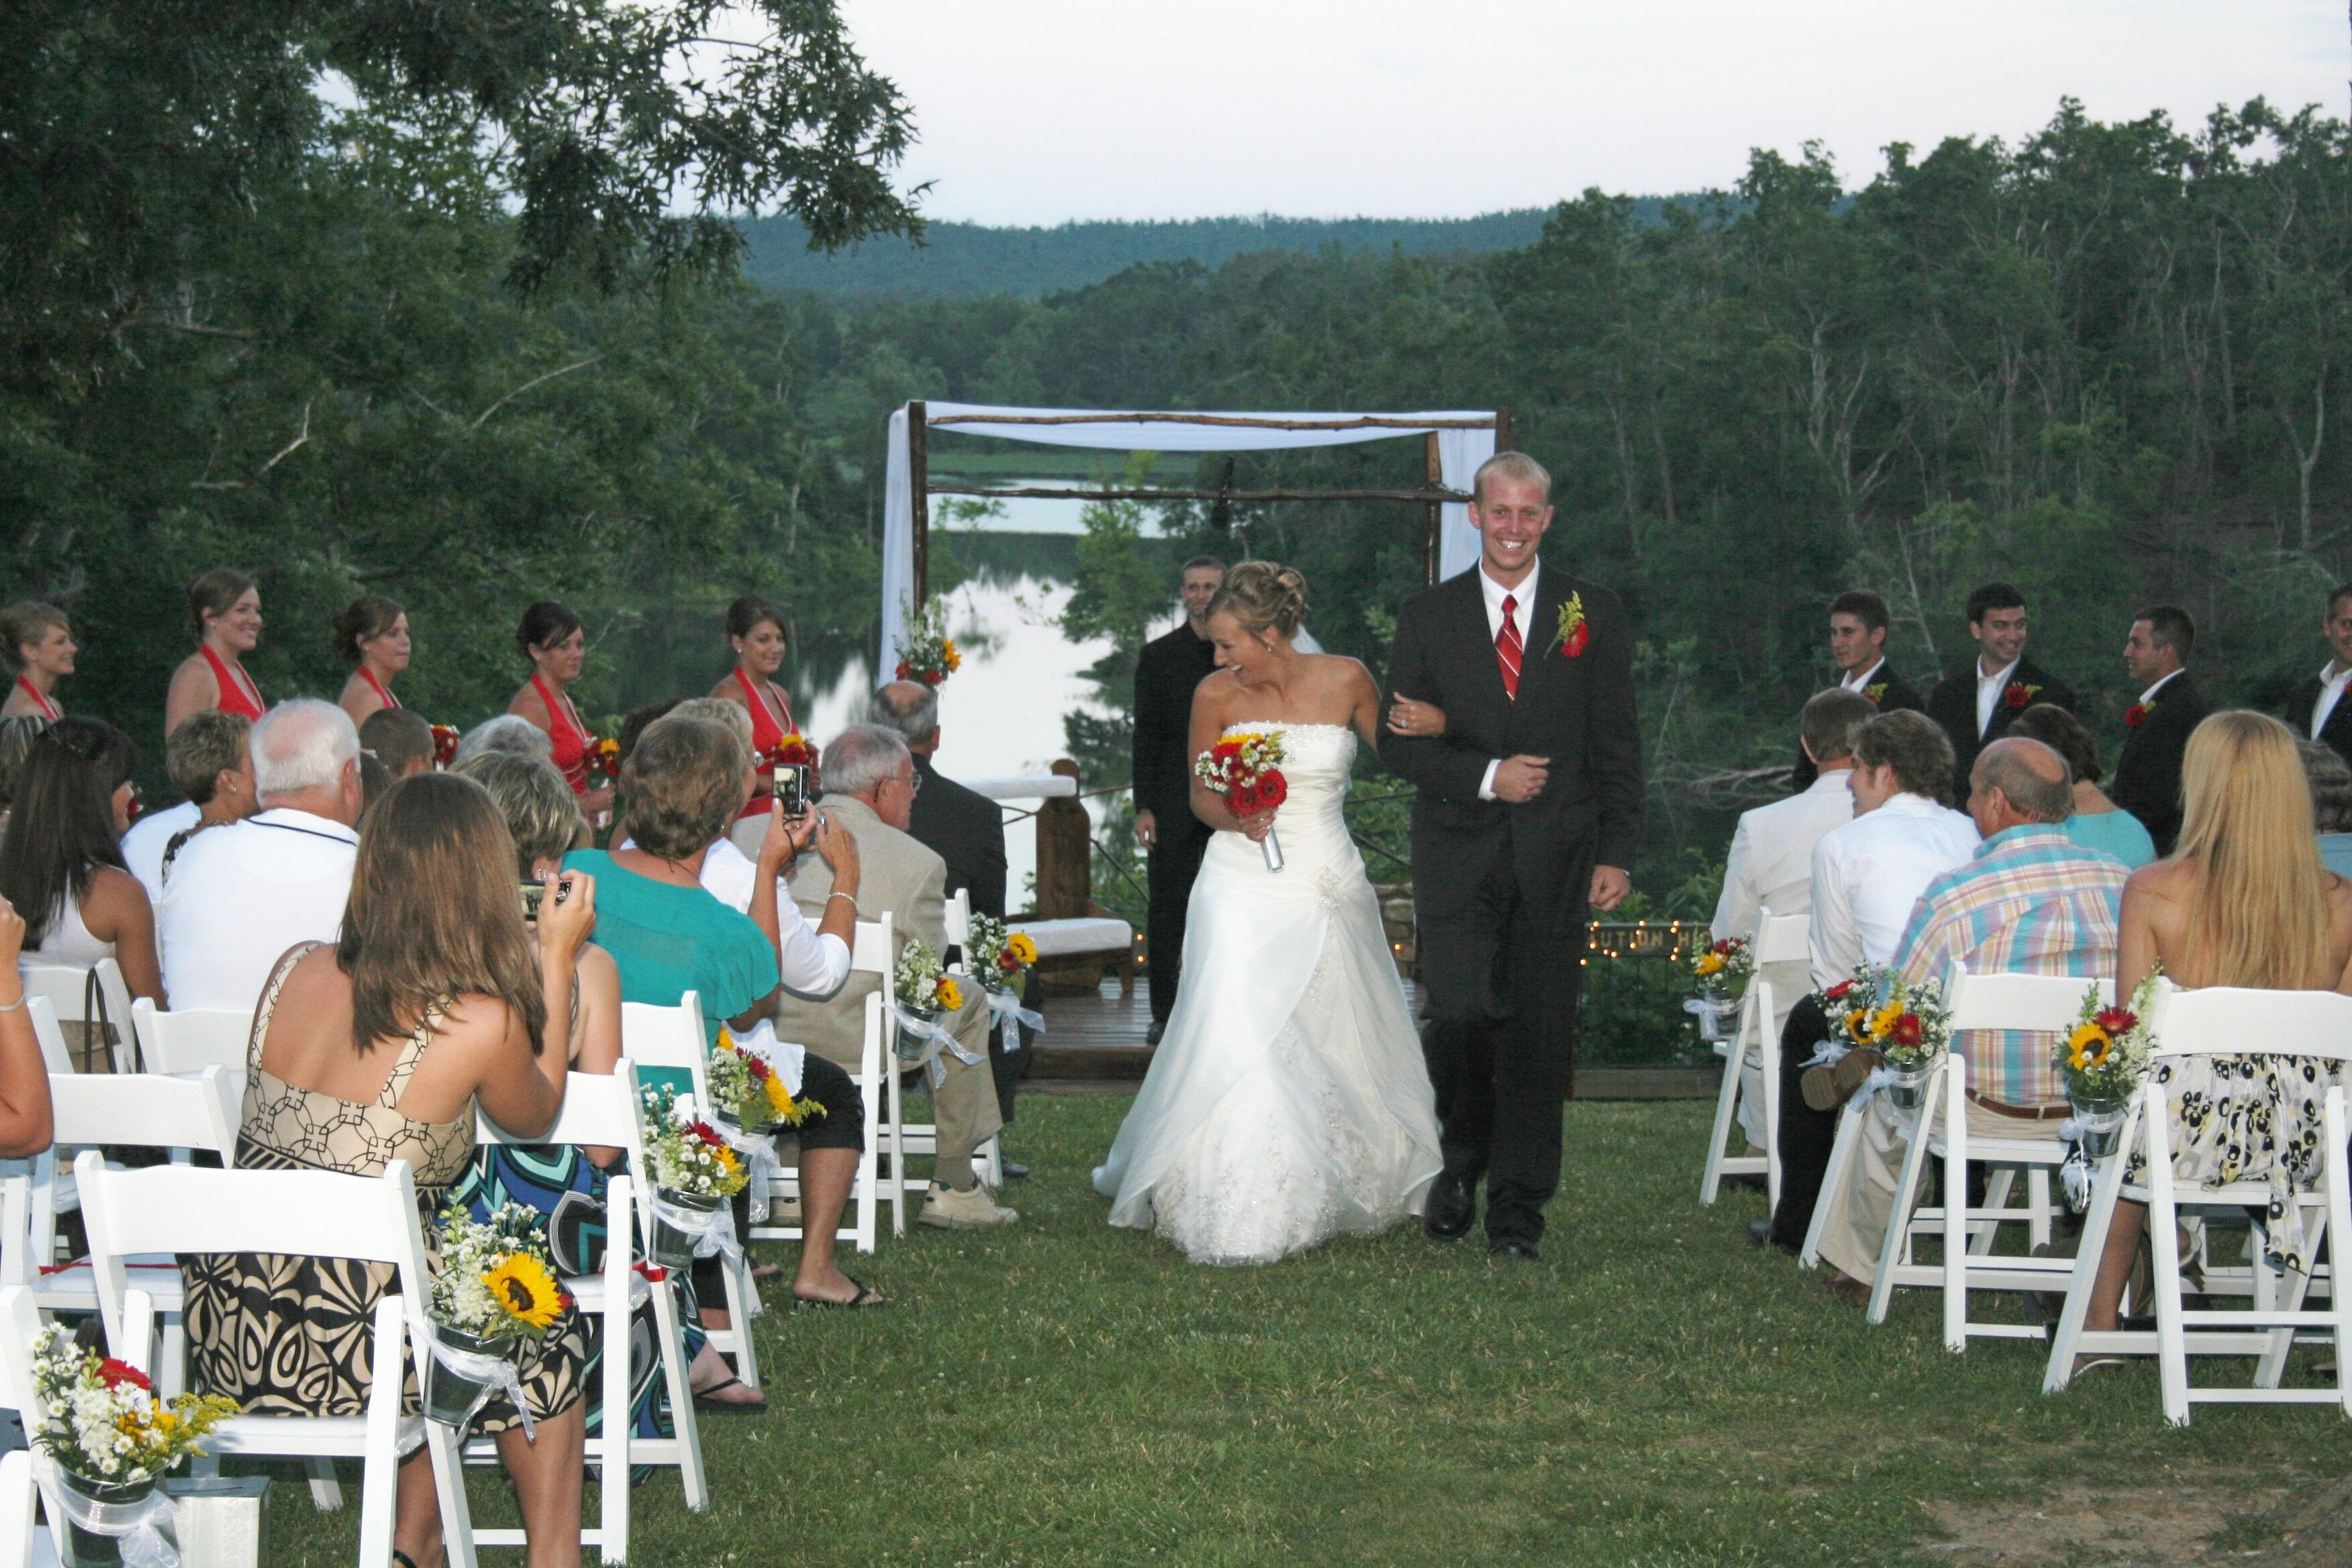 The Park Is A Beautiful Location For This Wedding At Pennyrile Forest State  Resort Park In Dawson Springs, Kentucky